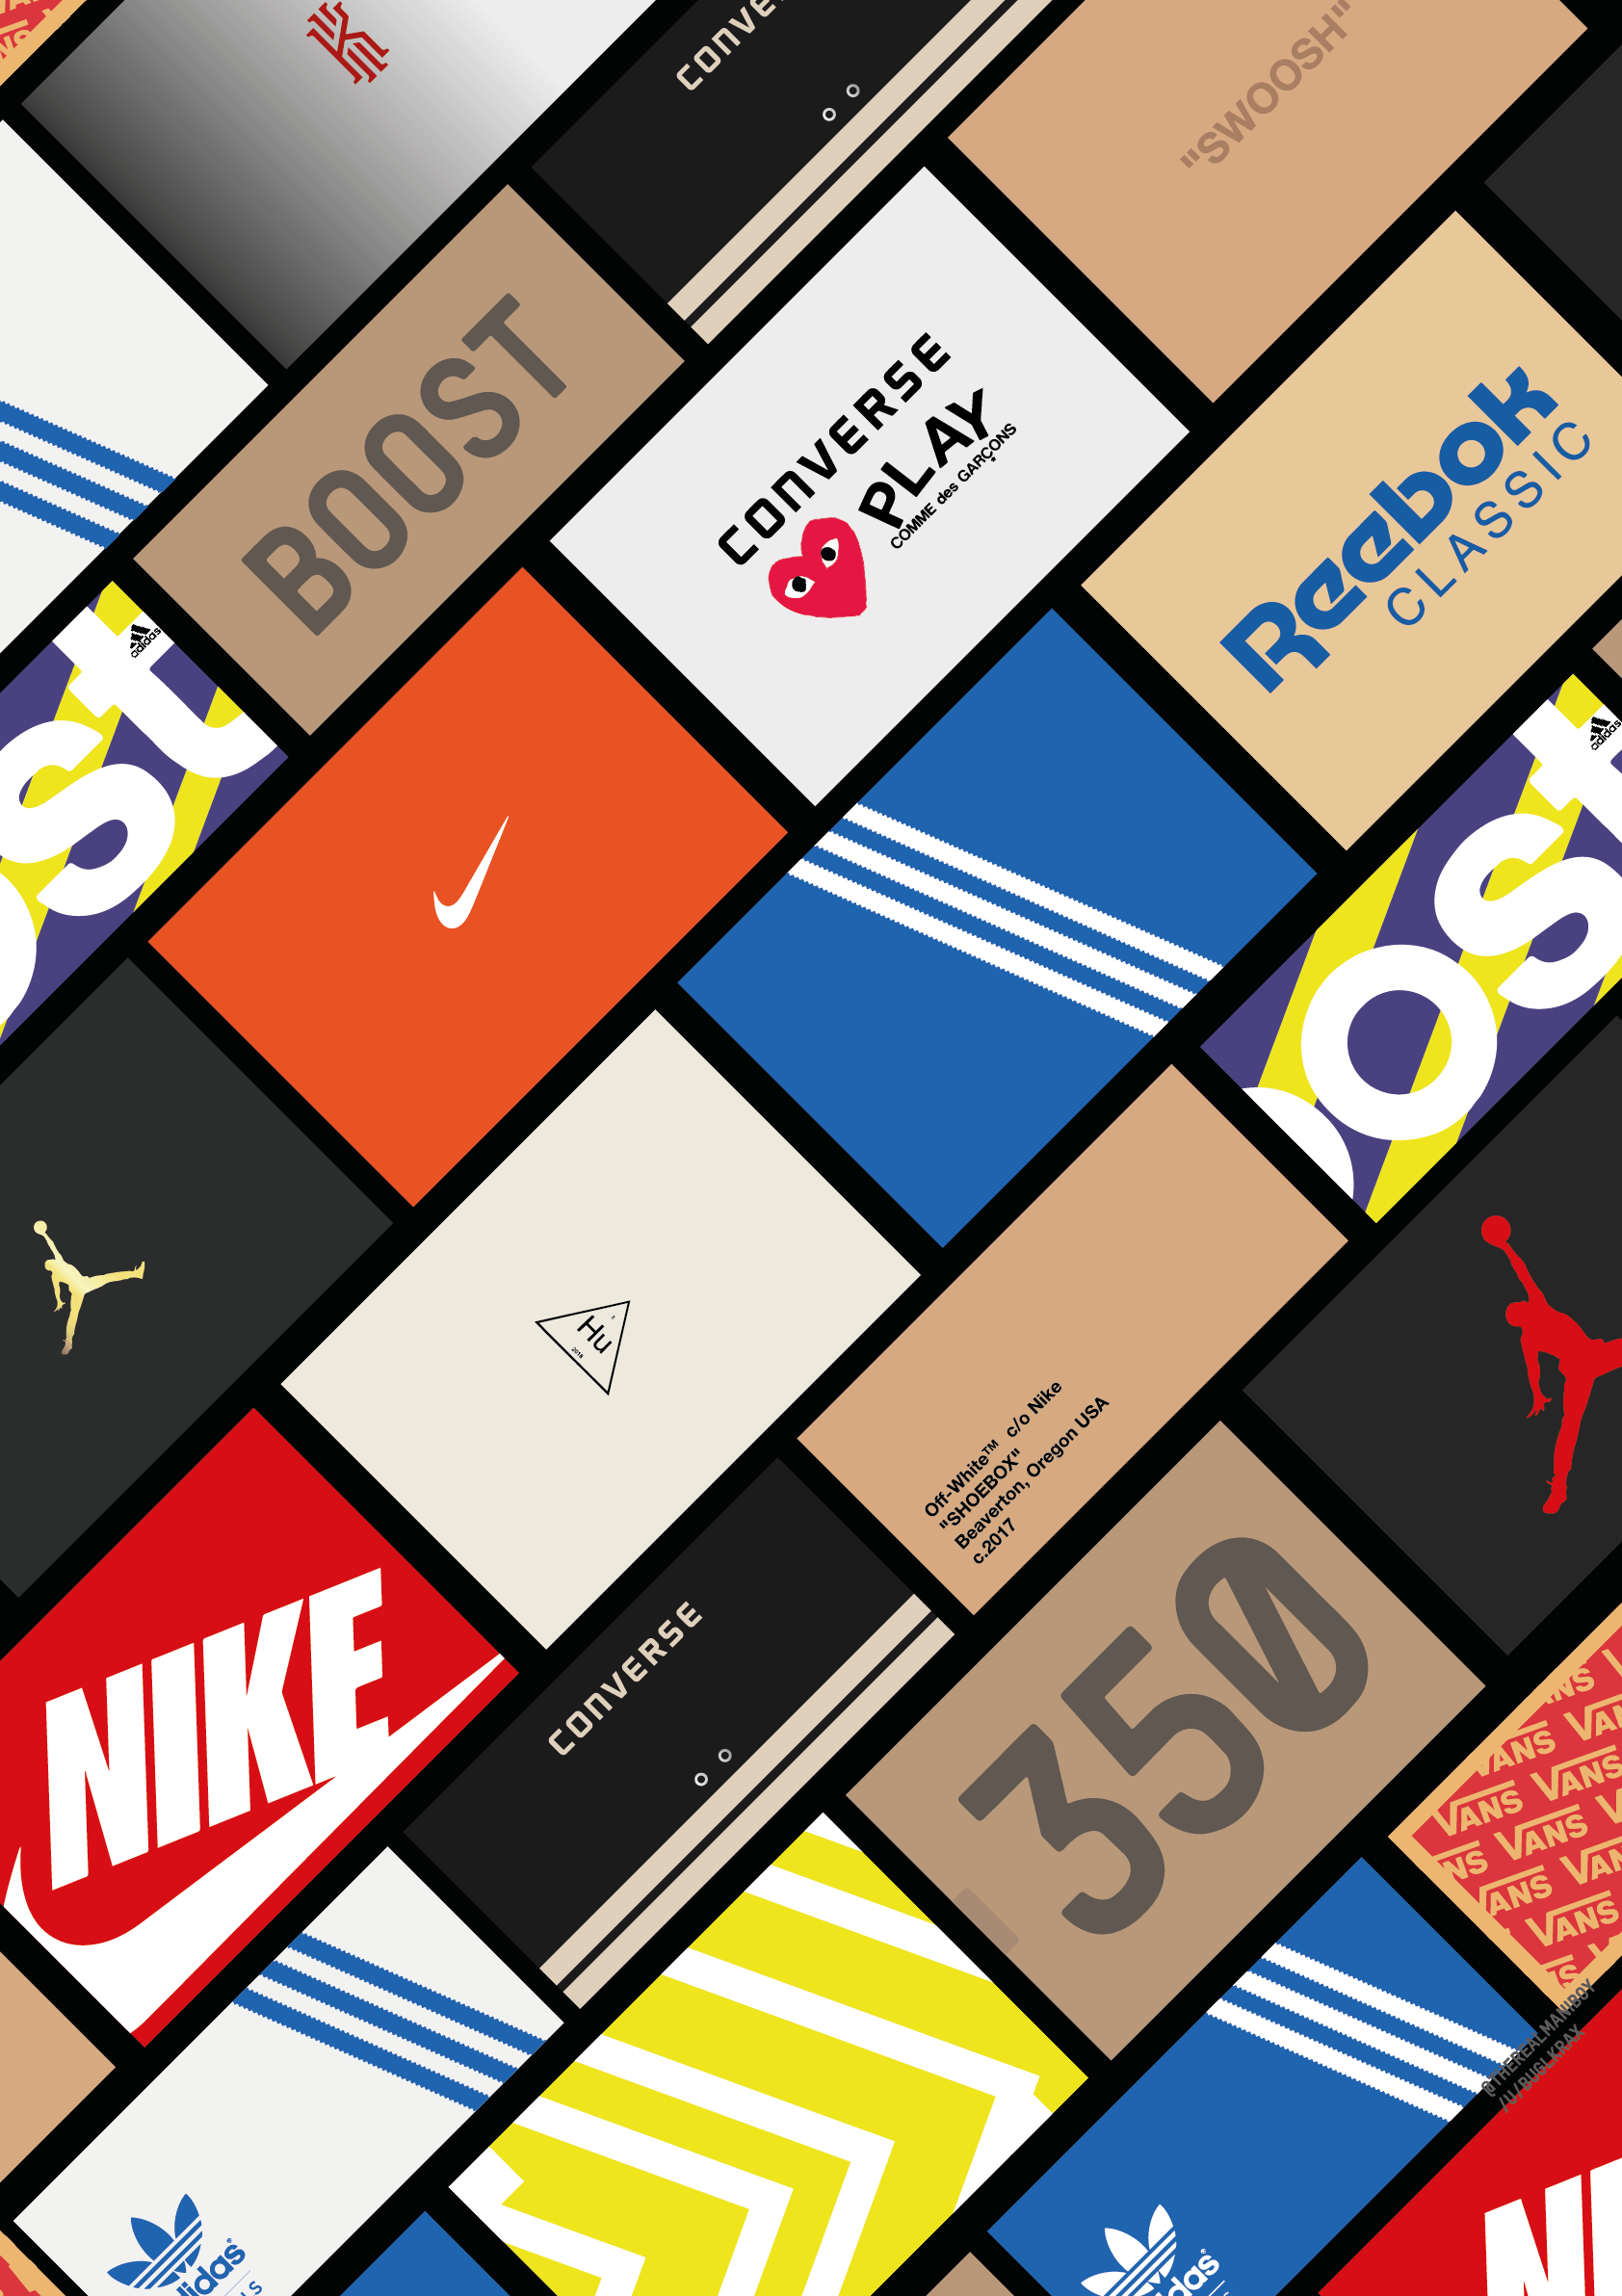 Sneakerhead Quotes Tumblr Wallpapers